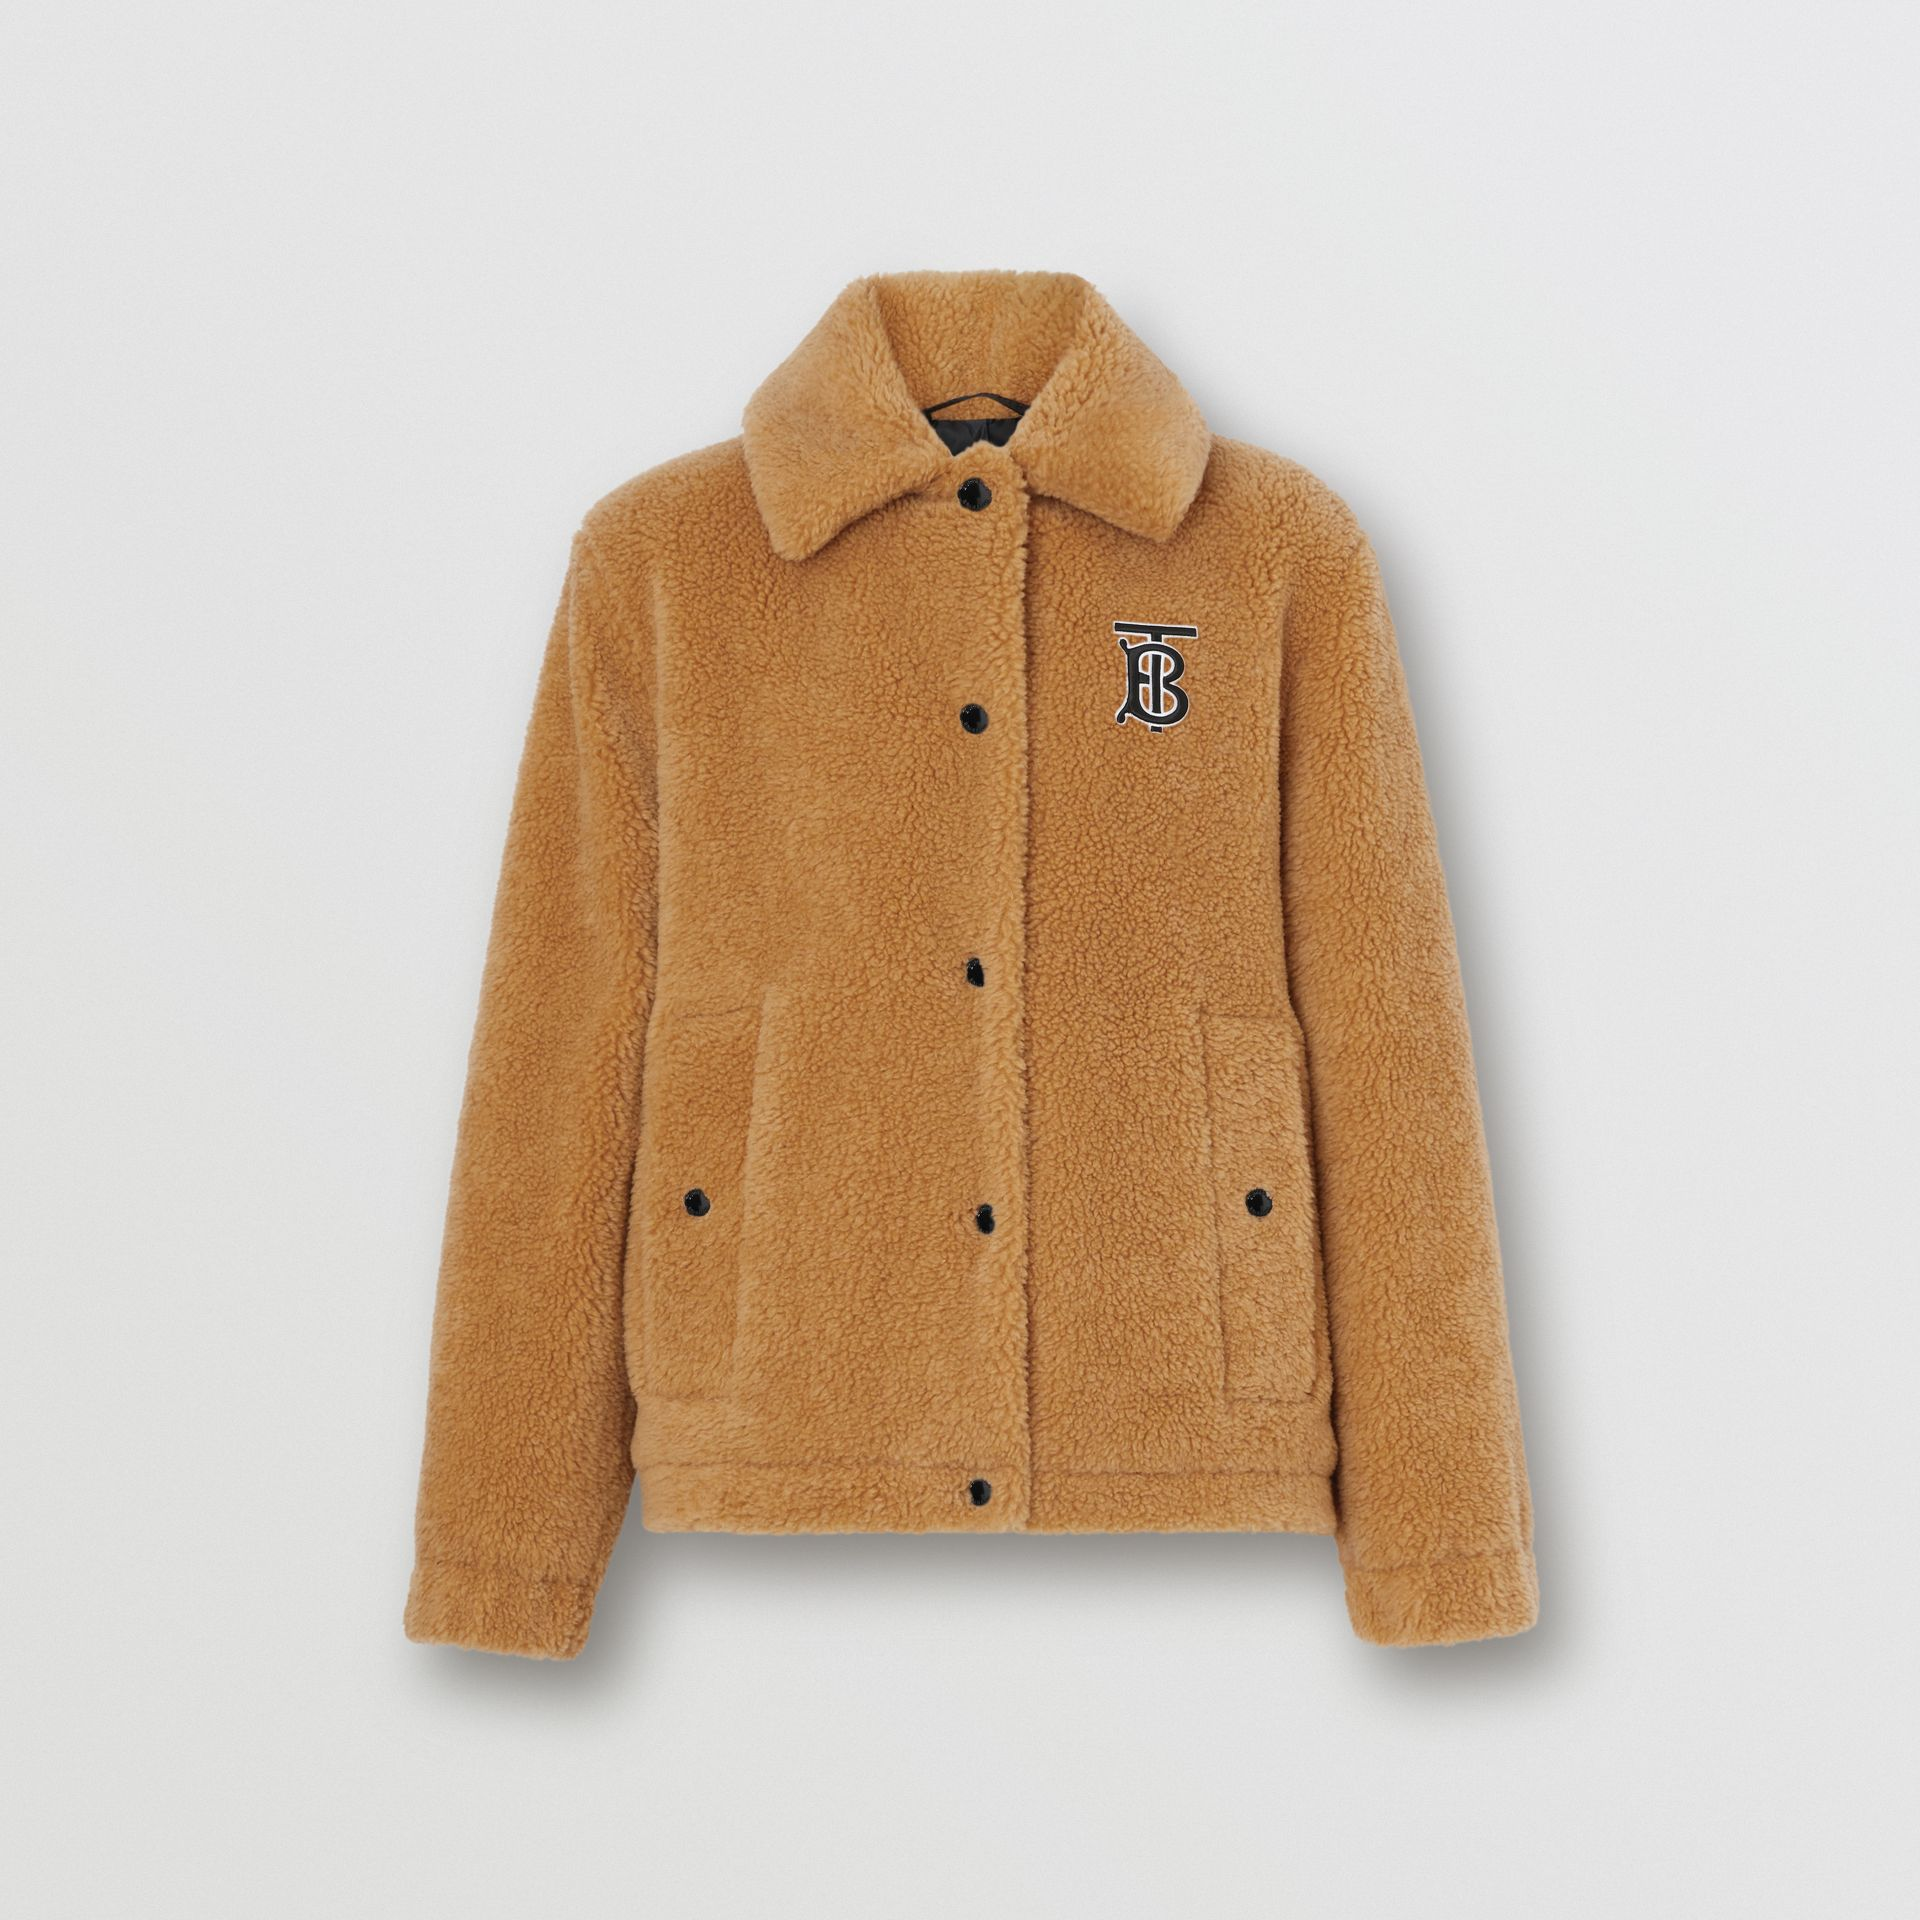 Monogram Motif Fleece Jacket in Camel - Women | Burberry Canada - gallery image 3